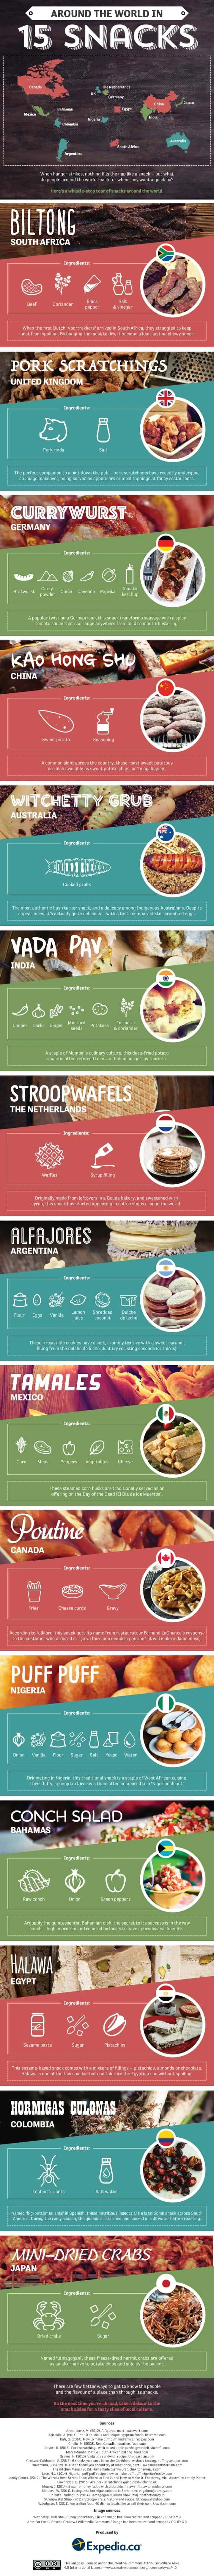 15 Delicious Snacks From Countries Around the World